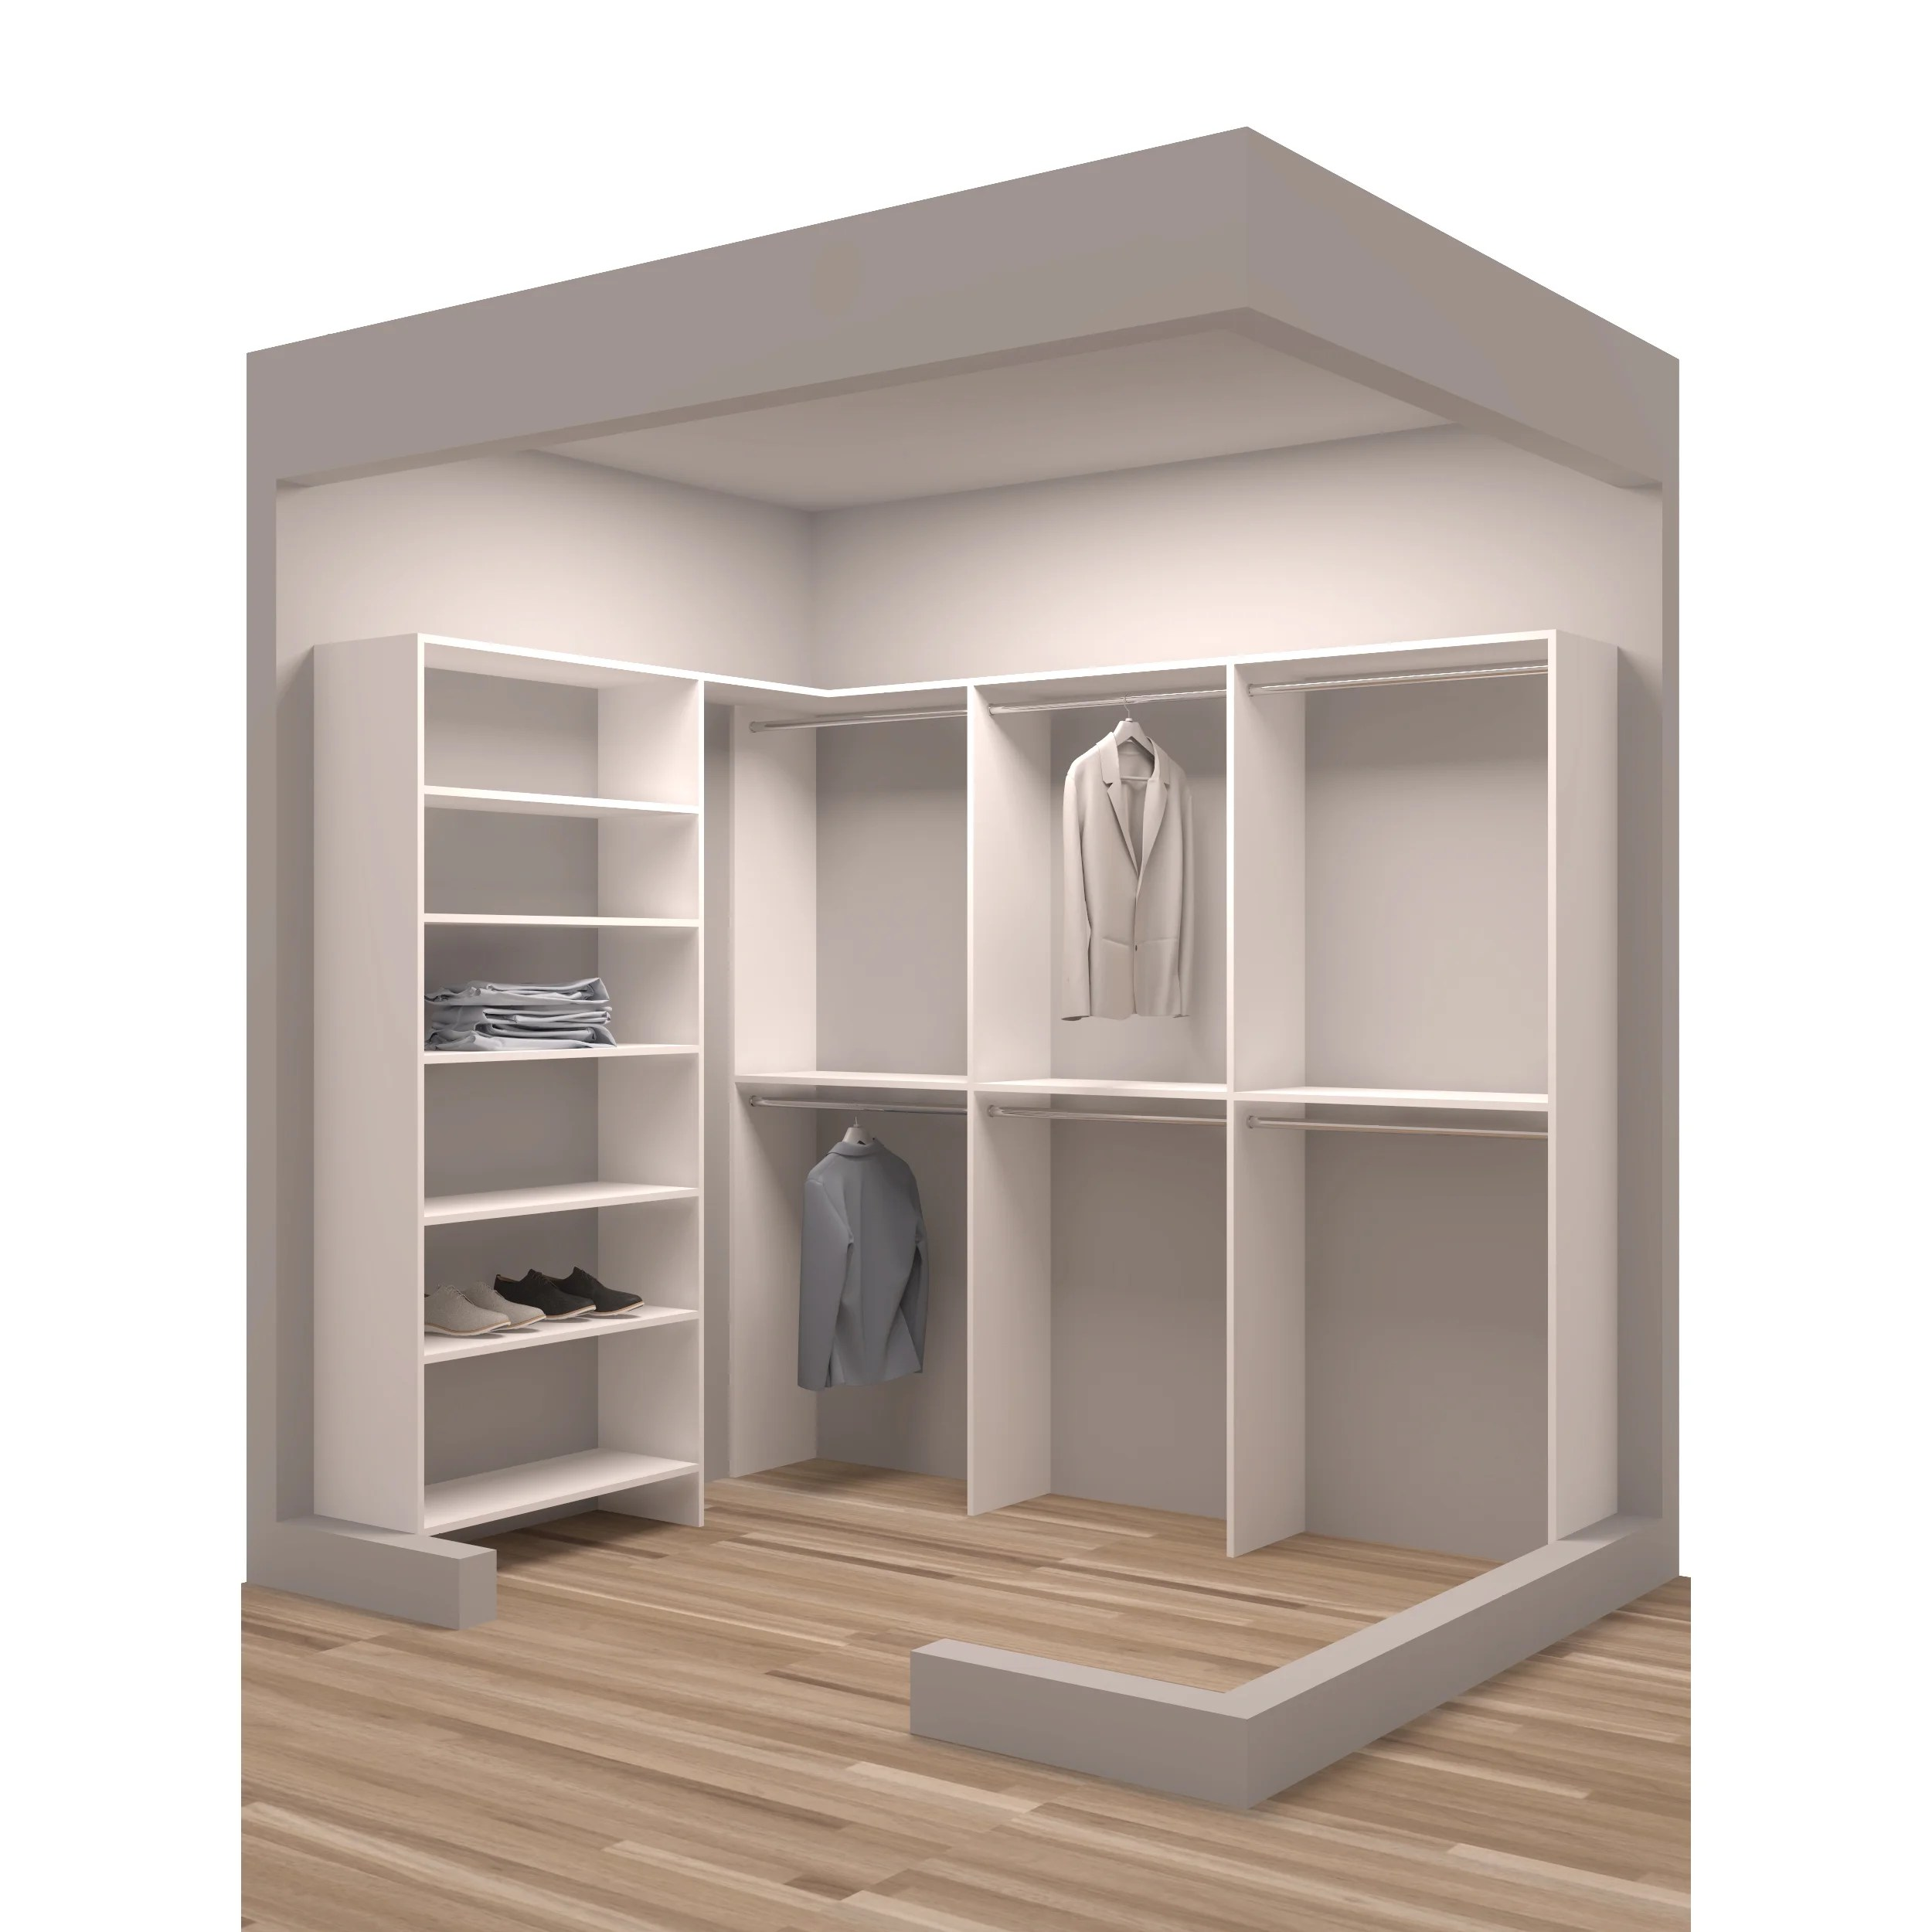 Details About Tidysquares White Wood 93 X 67 Corner Walk In Closet System White